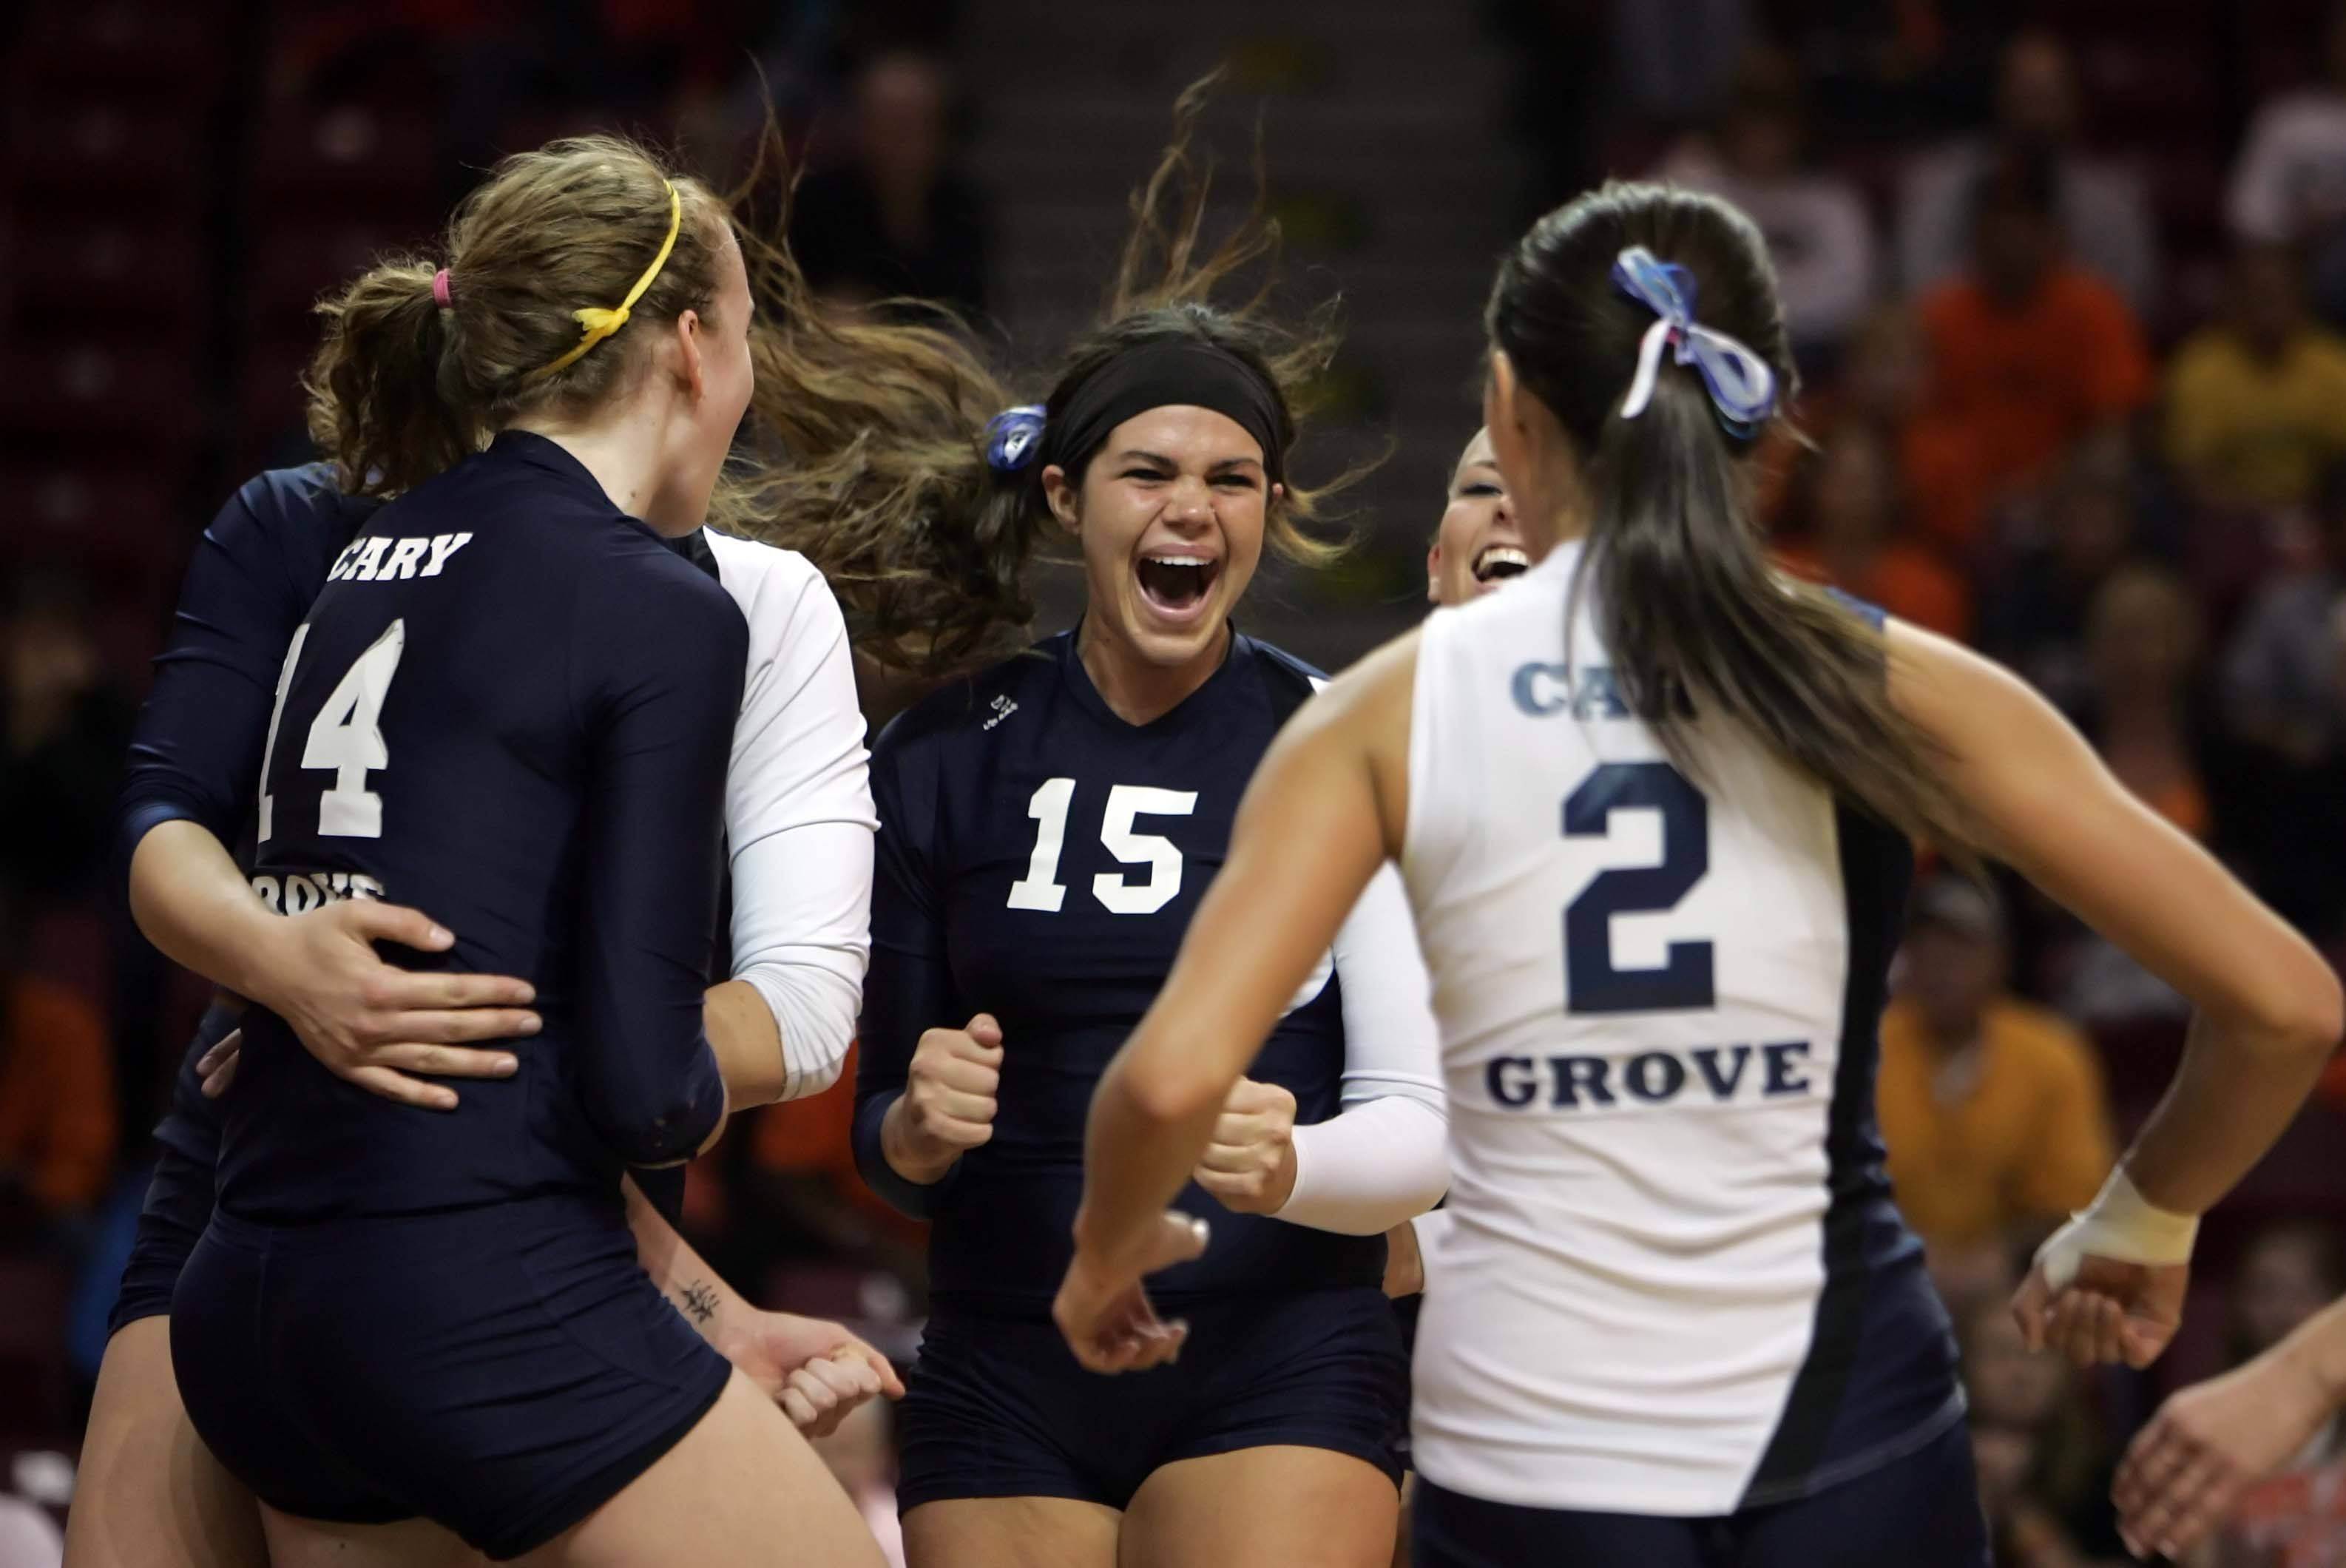 Cary-Grove setter Colleen Smith, 15, celebrates the Trojans win over Edwardsville with her teammates at the IHSA Class 4A State semi-final match Friday.